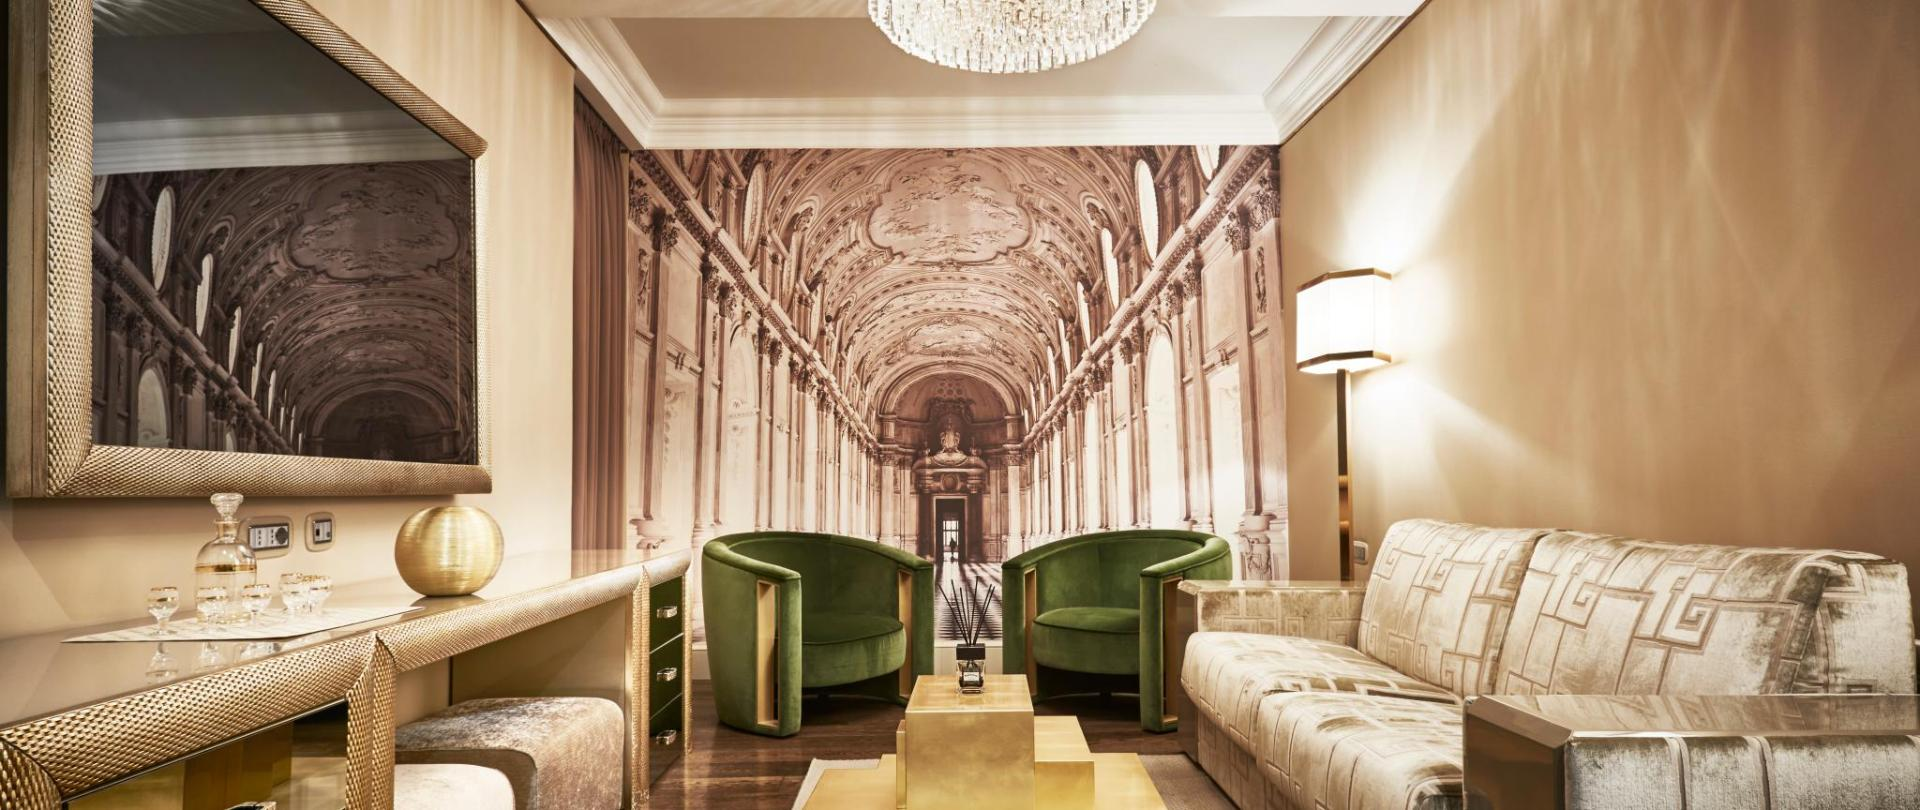 Luxury hotel in Rome: Spanish Royal Suite